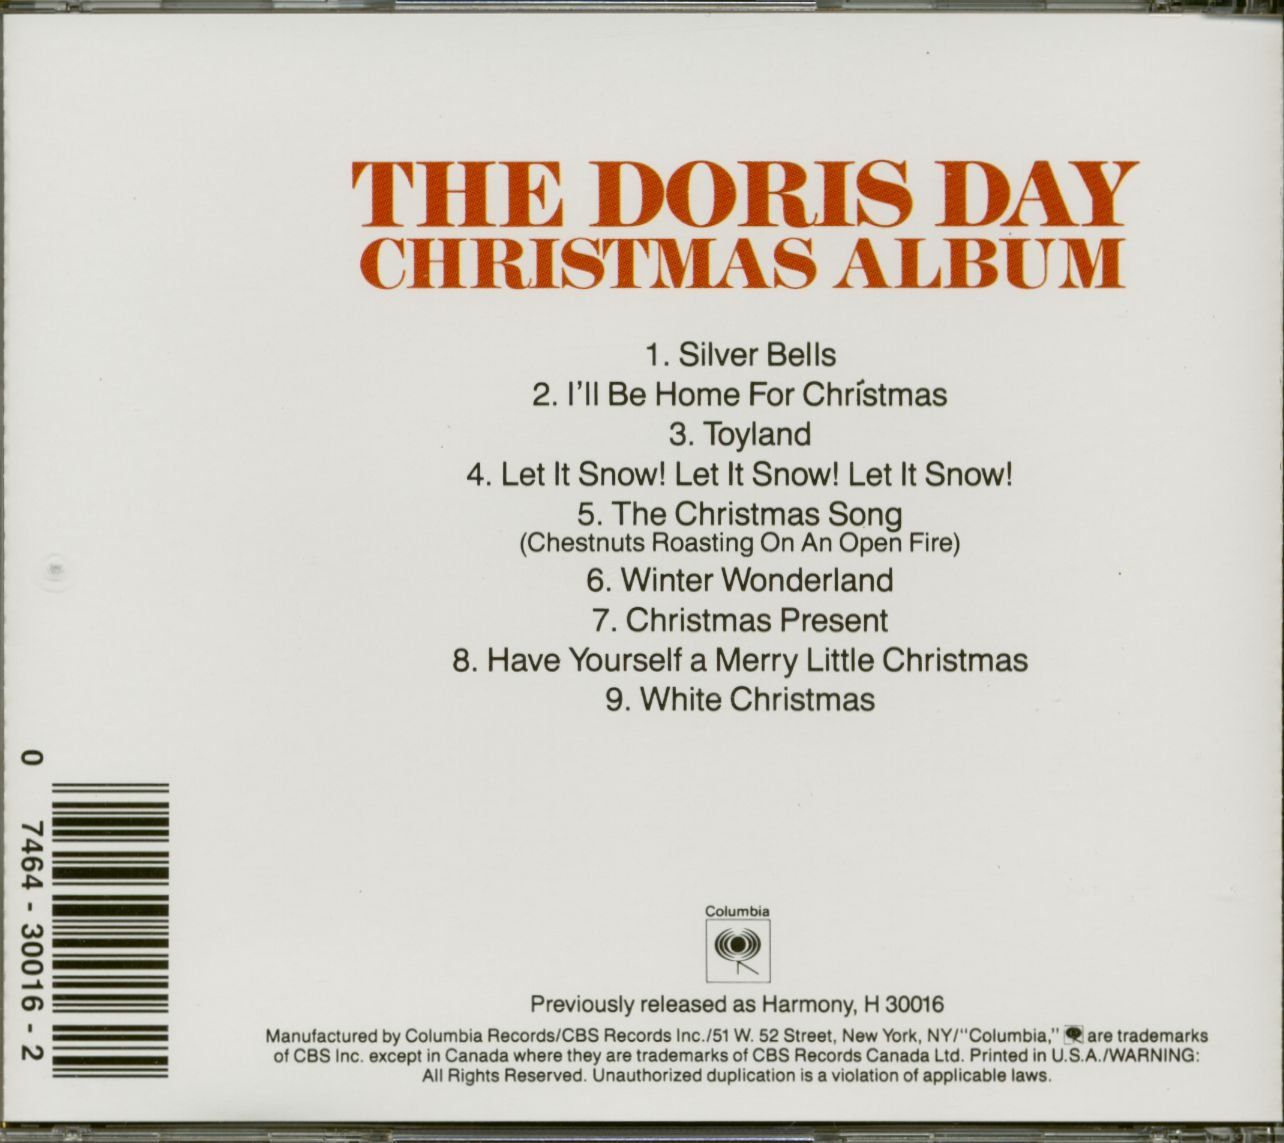 Doris Day - The Doris Day Christmas Album - Amazon.com Music